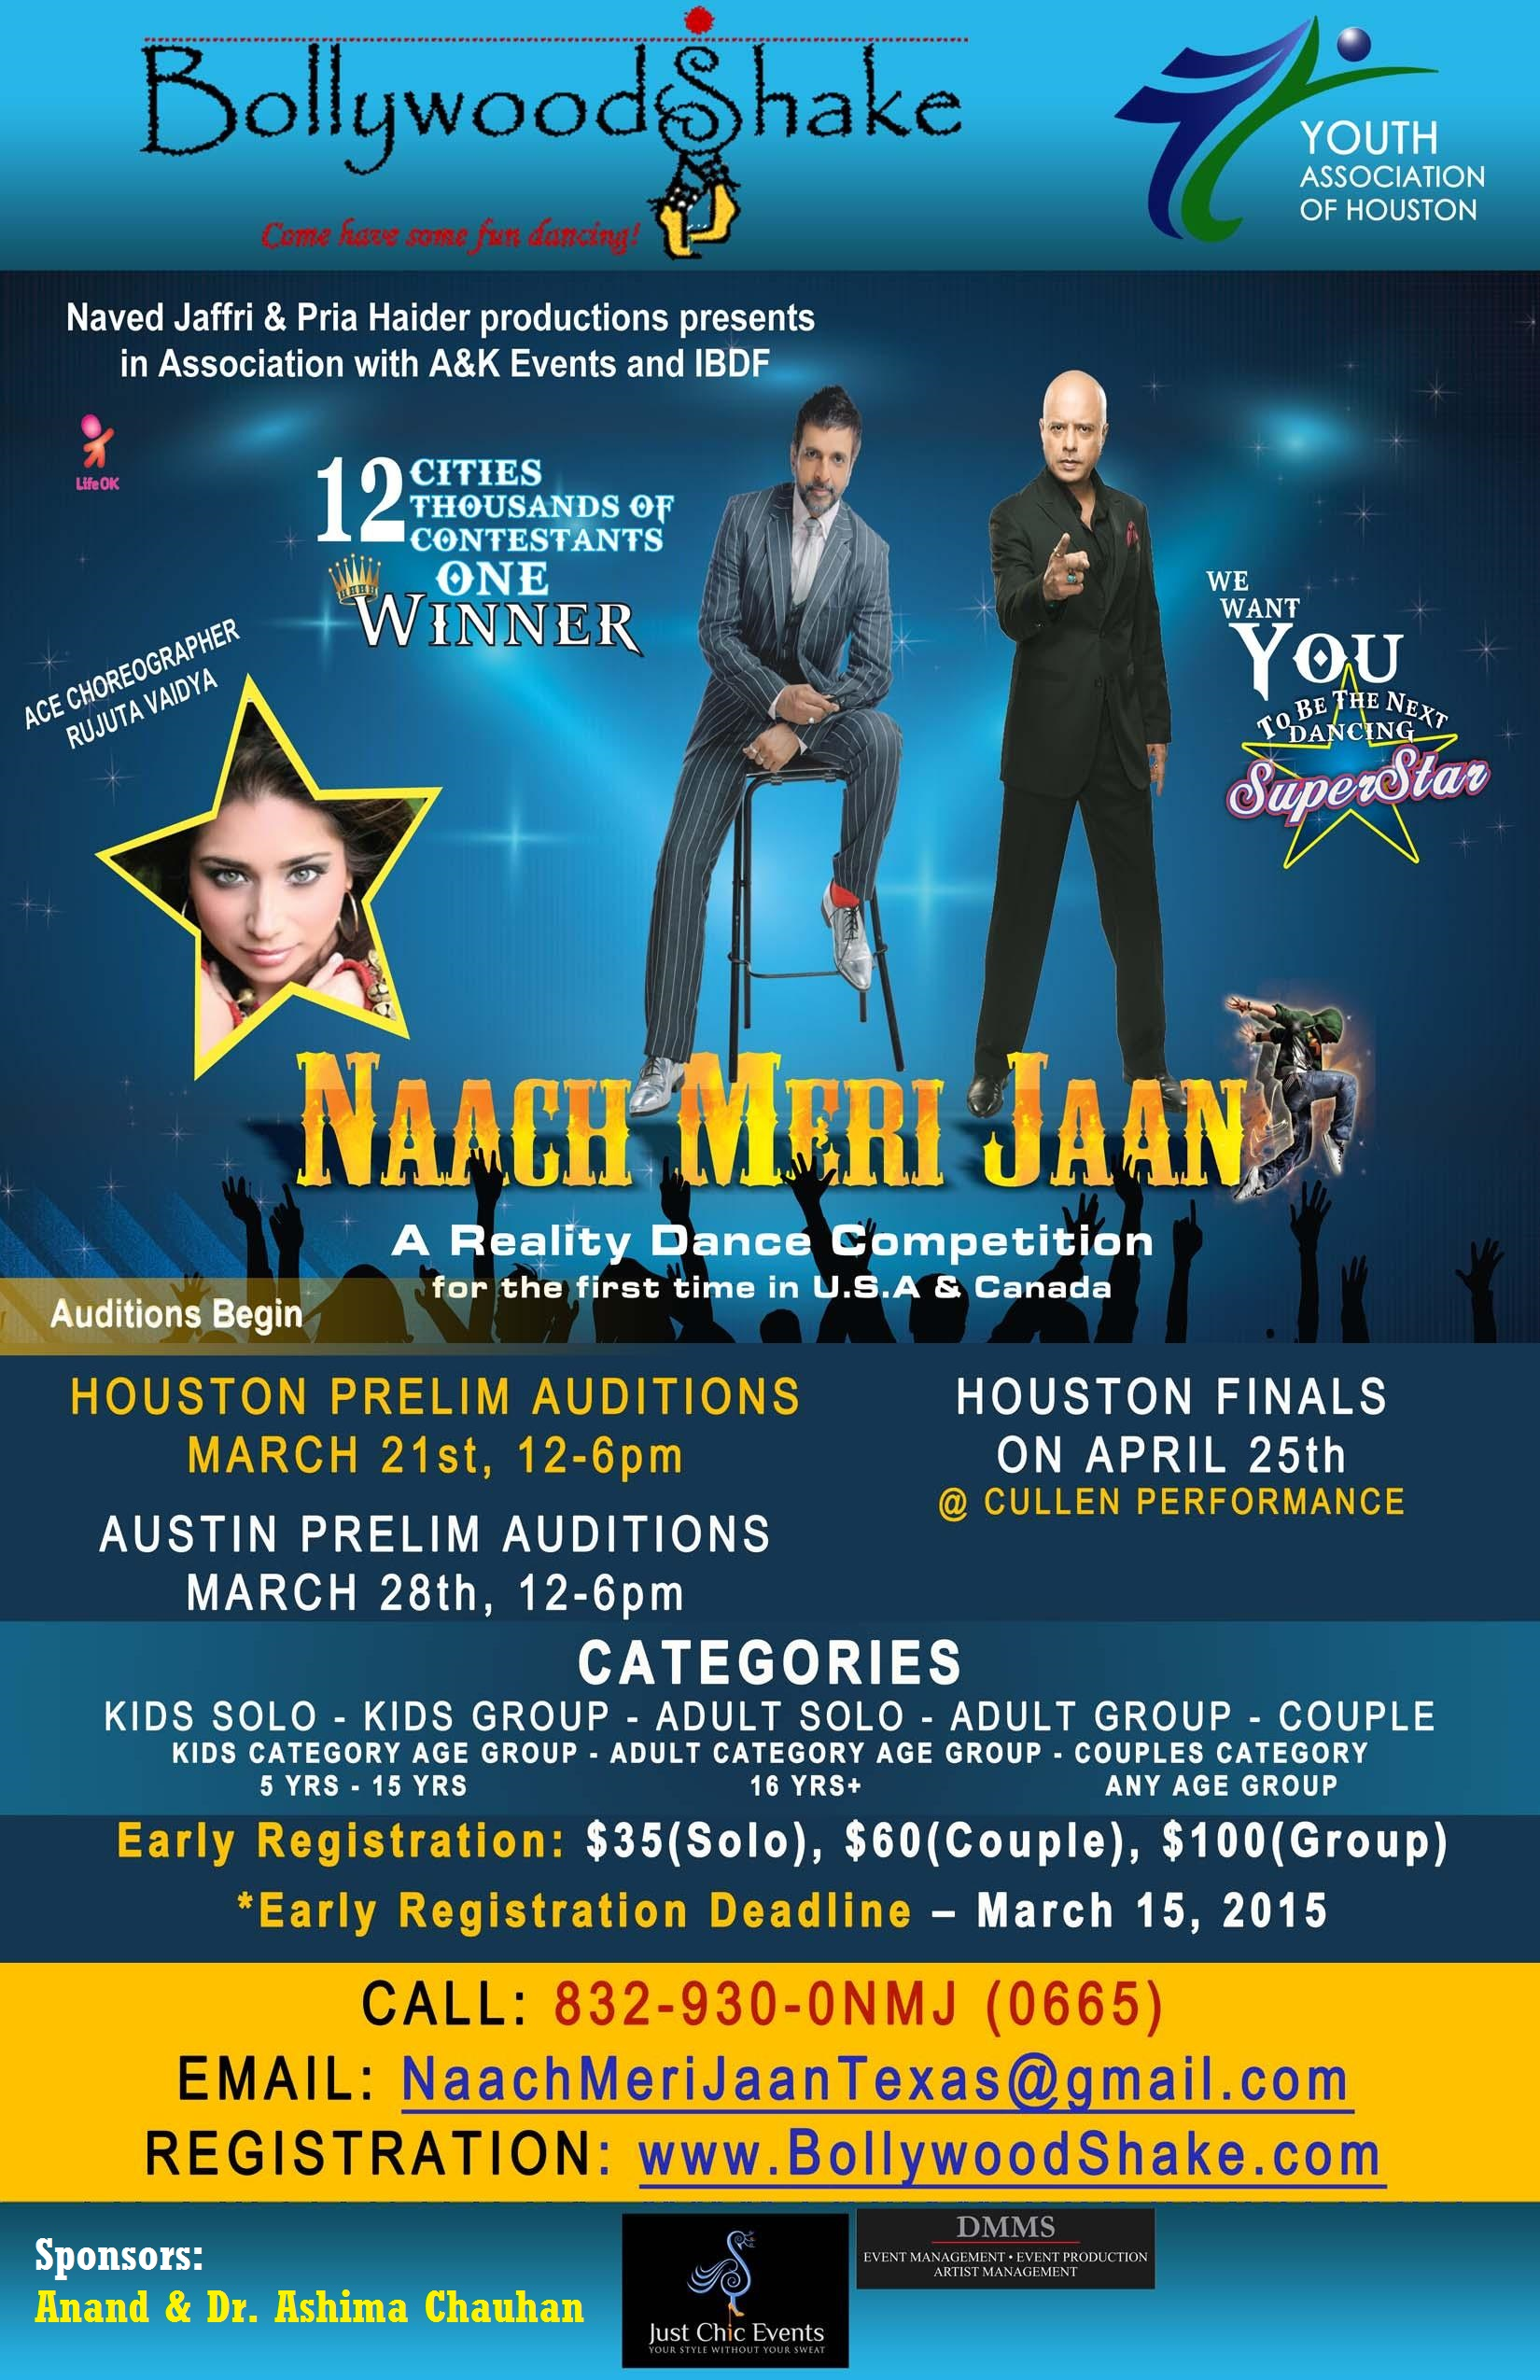 Naach Meri Jaan - Reality Dance Competition with Jaffrey Brothers